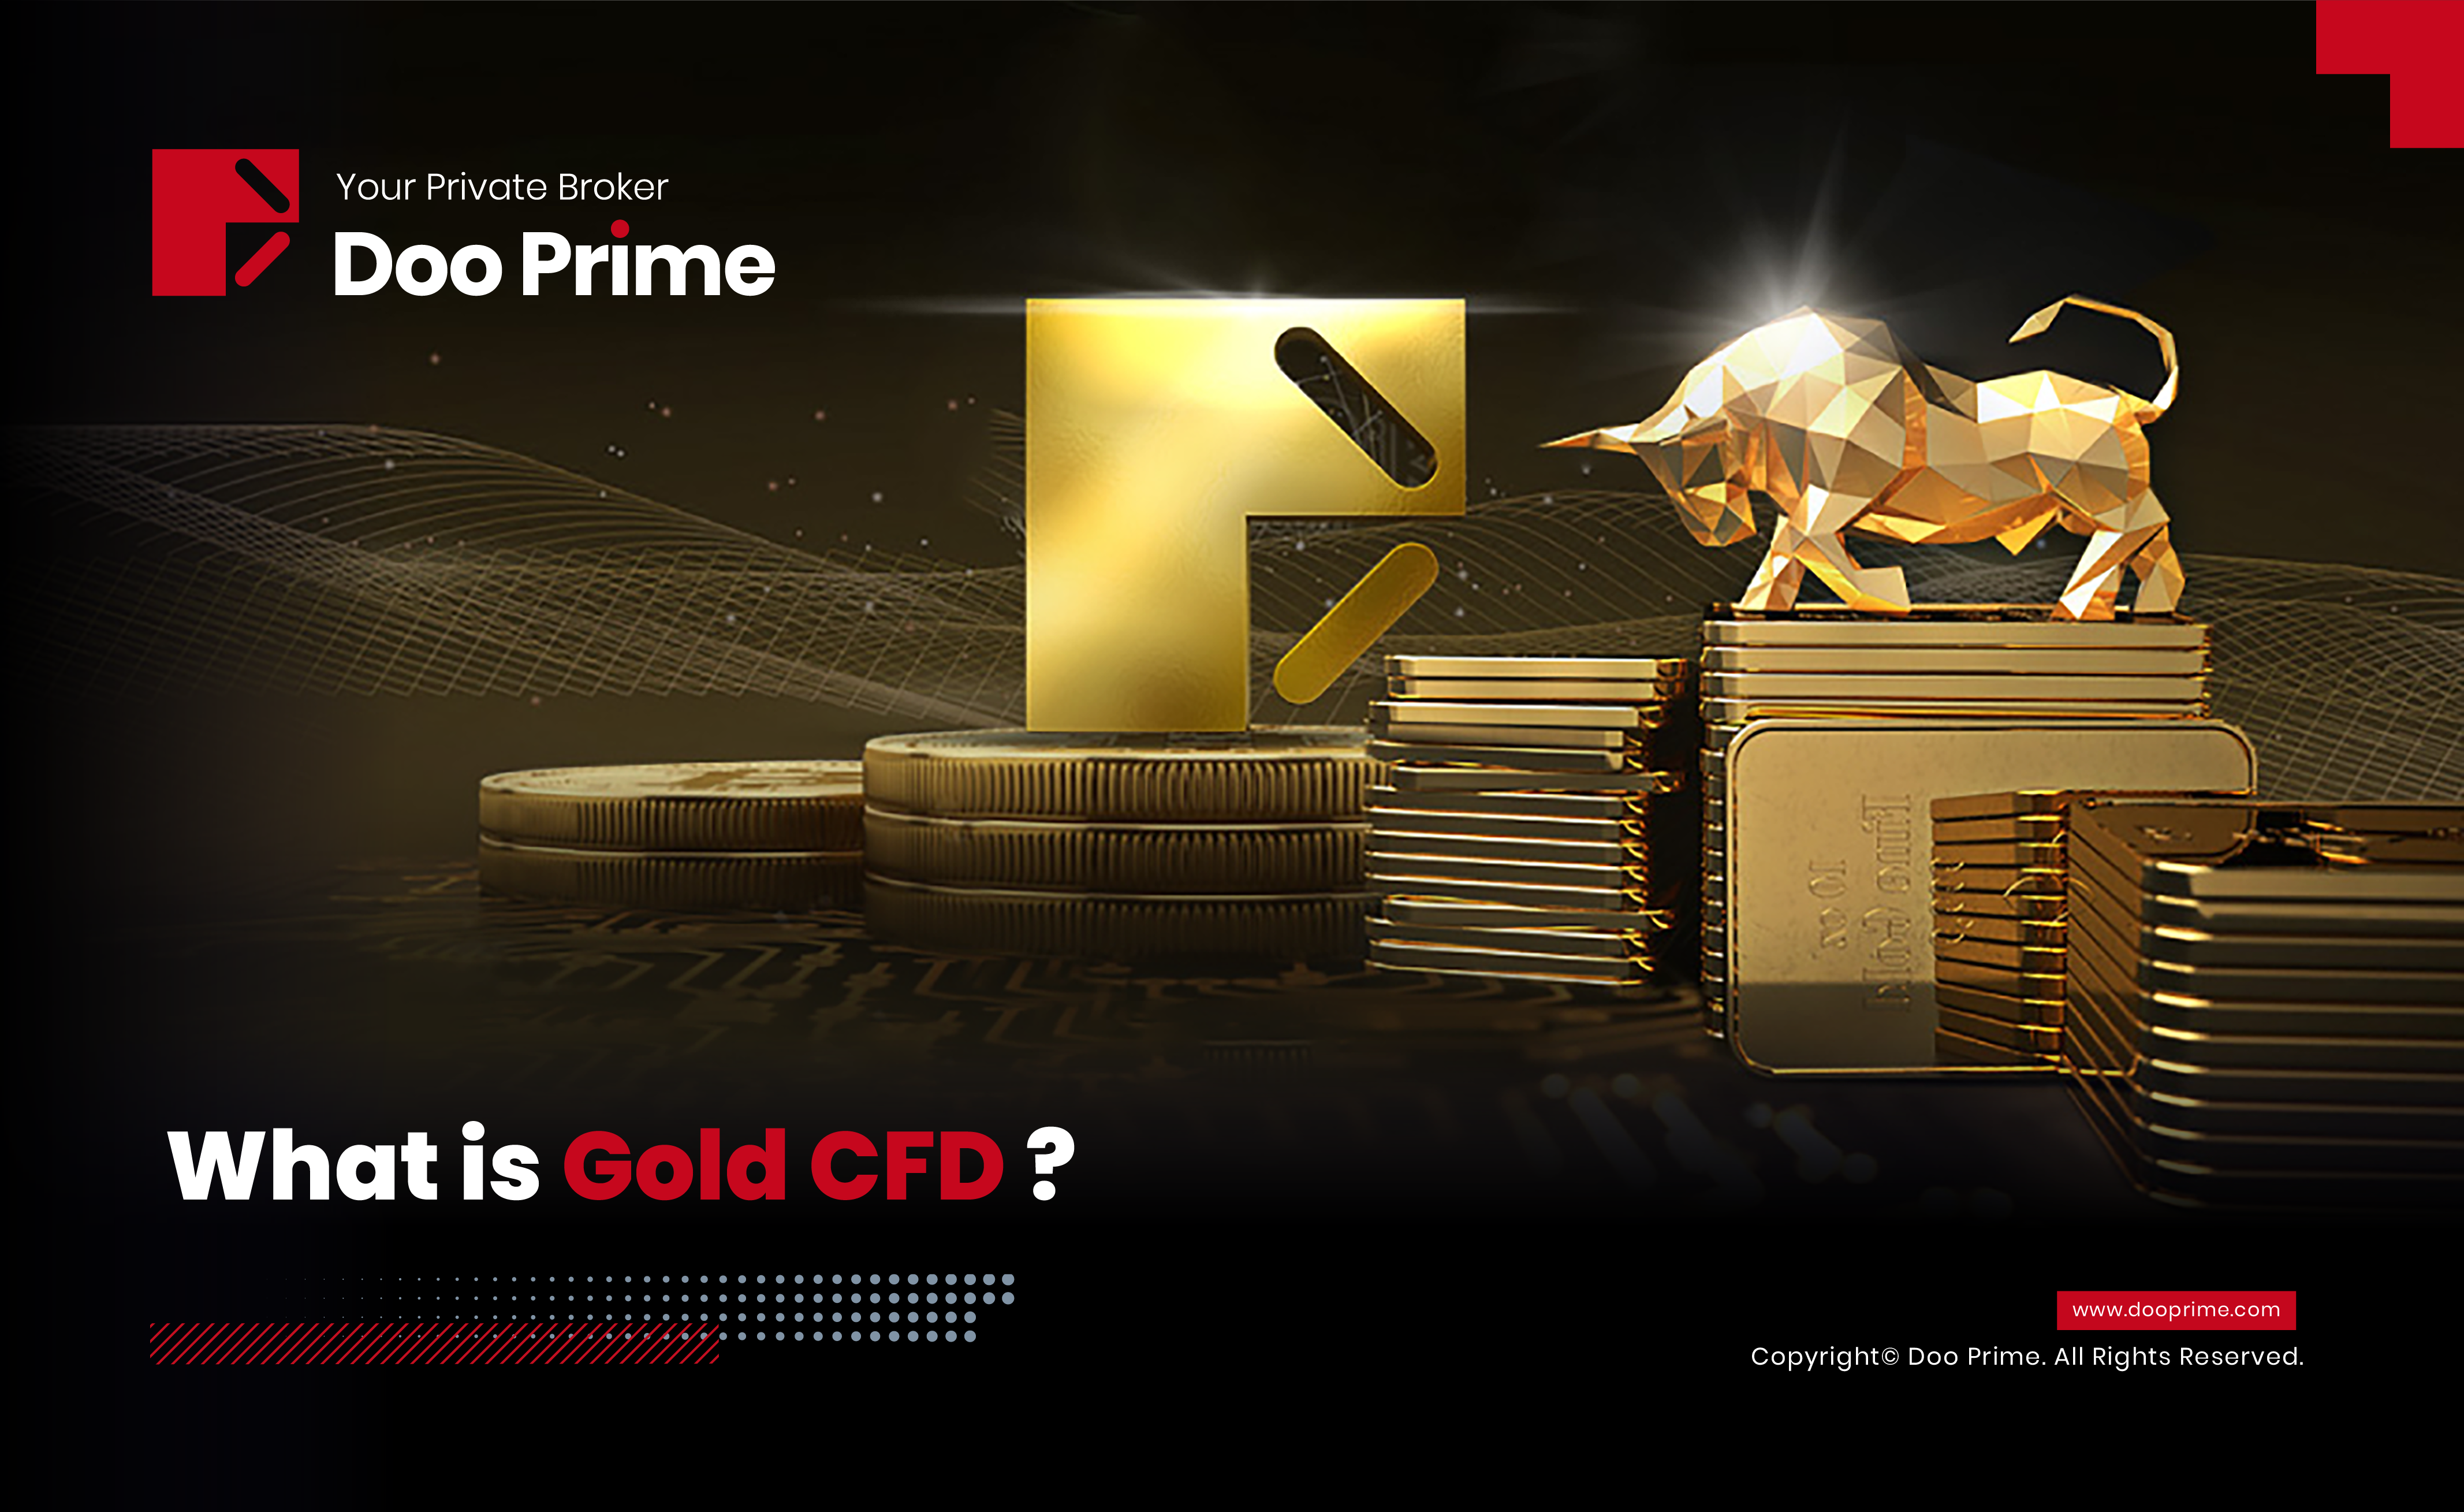 What Is Gold CFD?